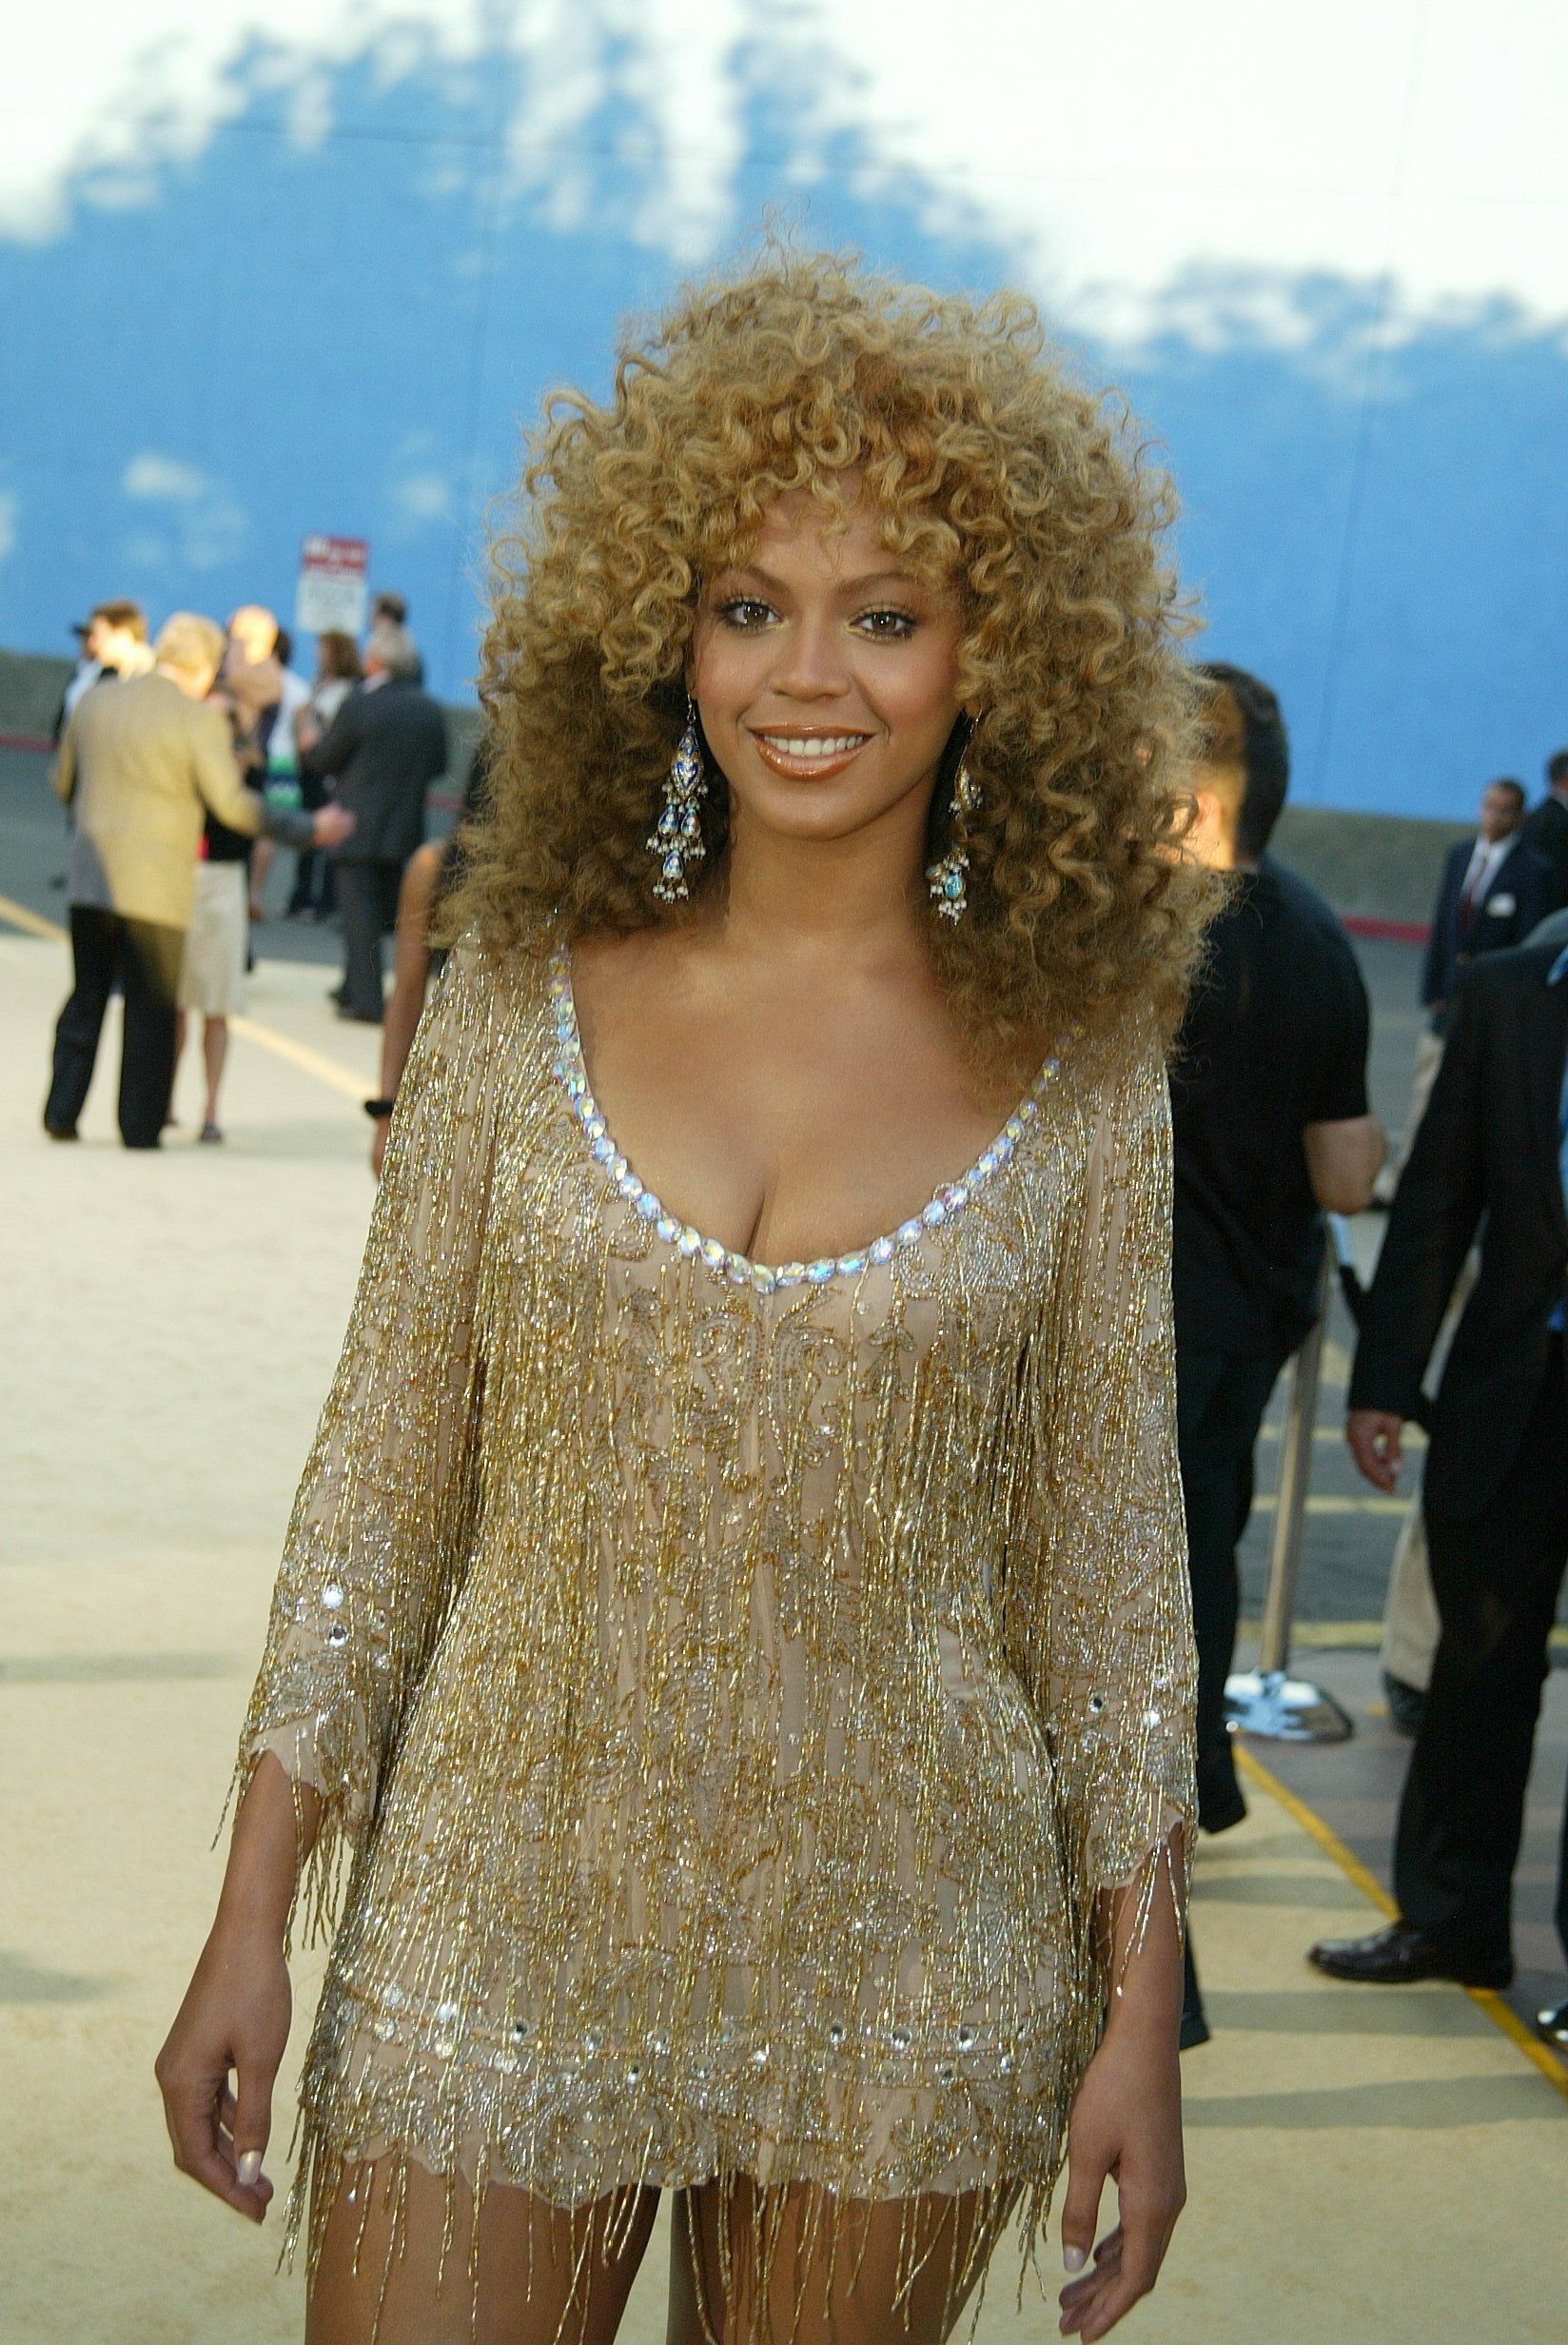 Beyonce large dirty blonde curly afro hair